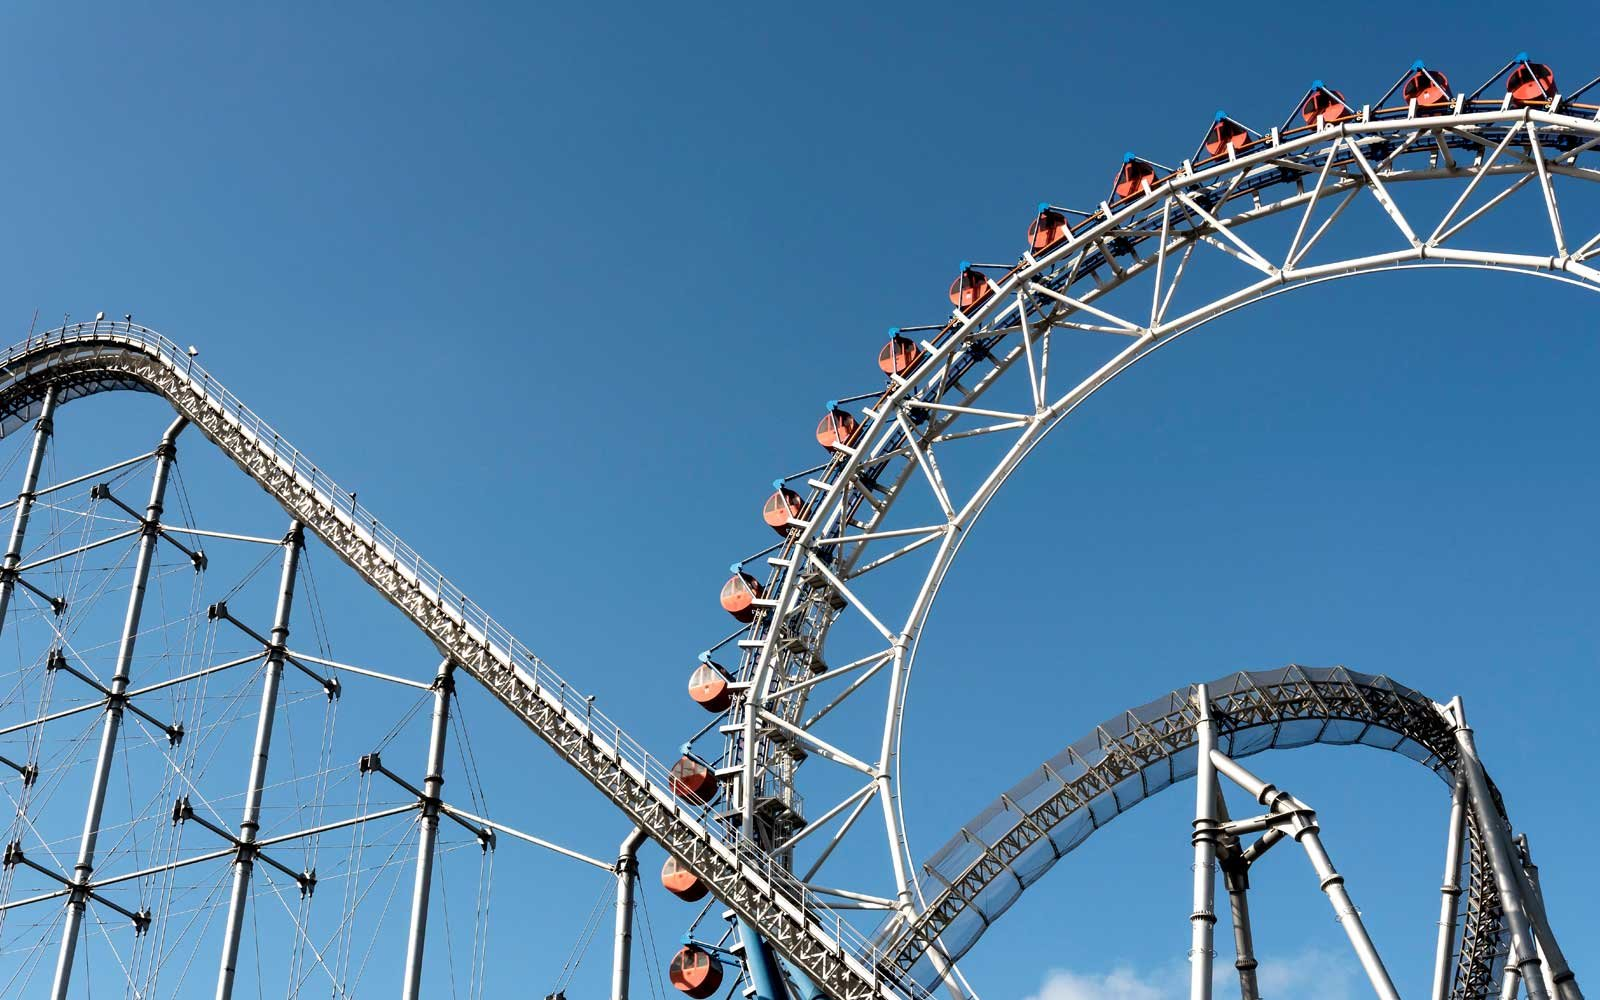 Roller coaster and Ferris wheel, Tokyo Dome City Attractions amusement park, Japan.